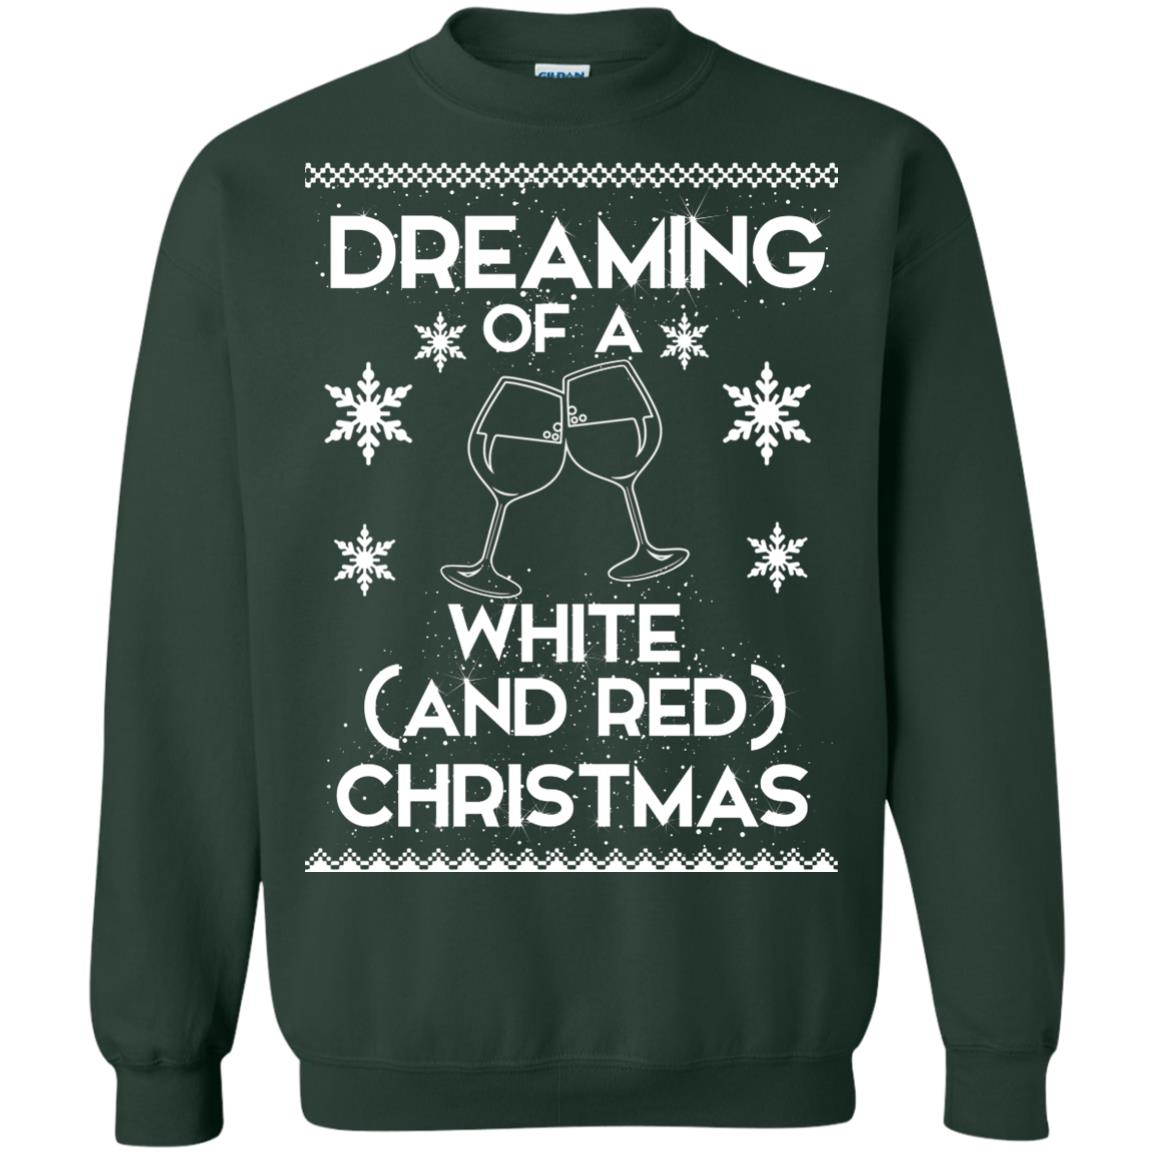 image 1765 - Dreaming of a White and Red Christmas Sweatshirt, Hoodie